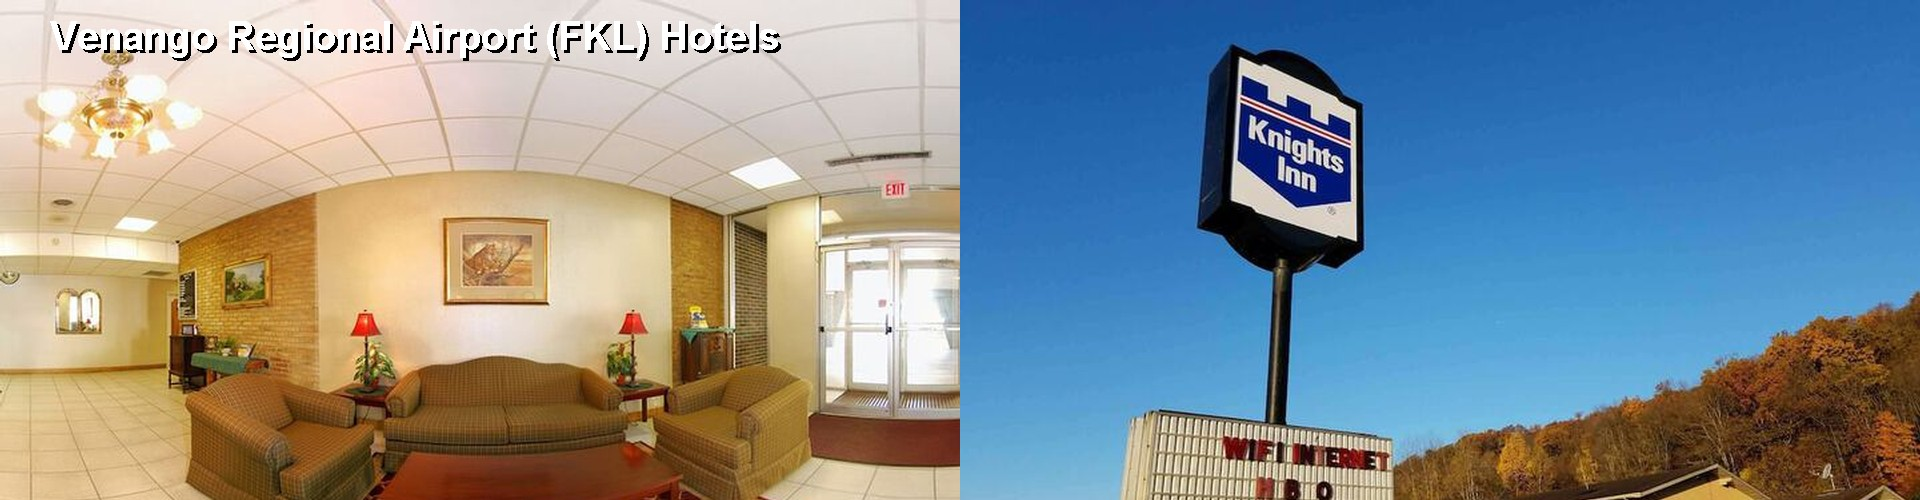 5 Best Hotels near Venango Regional Airport (FKL)